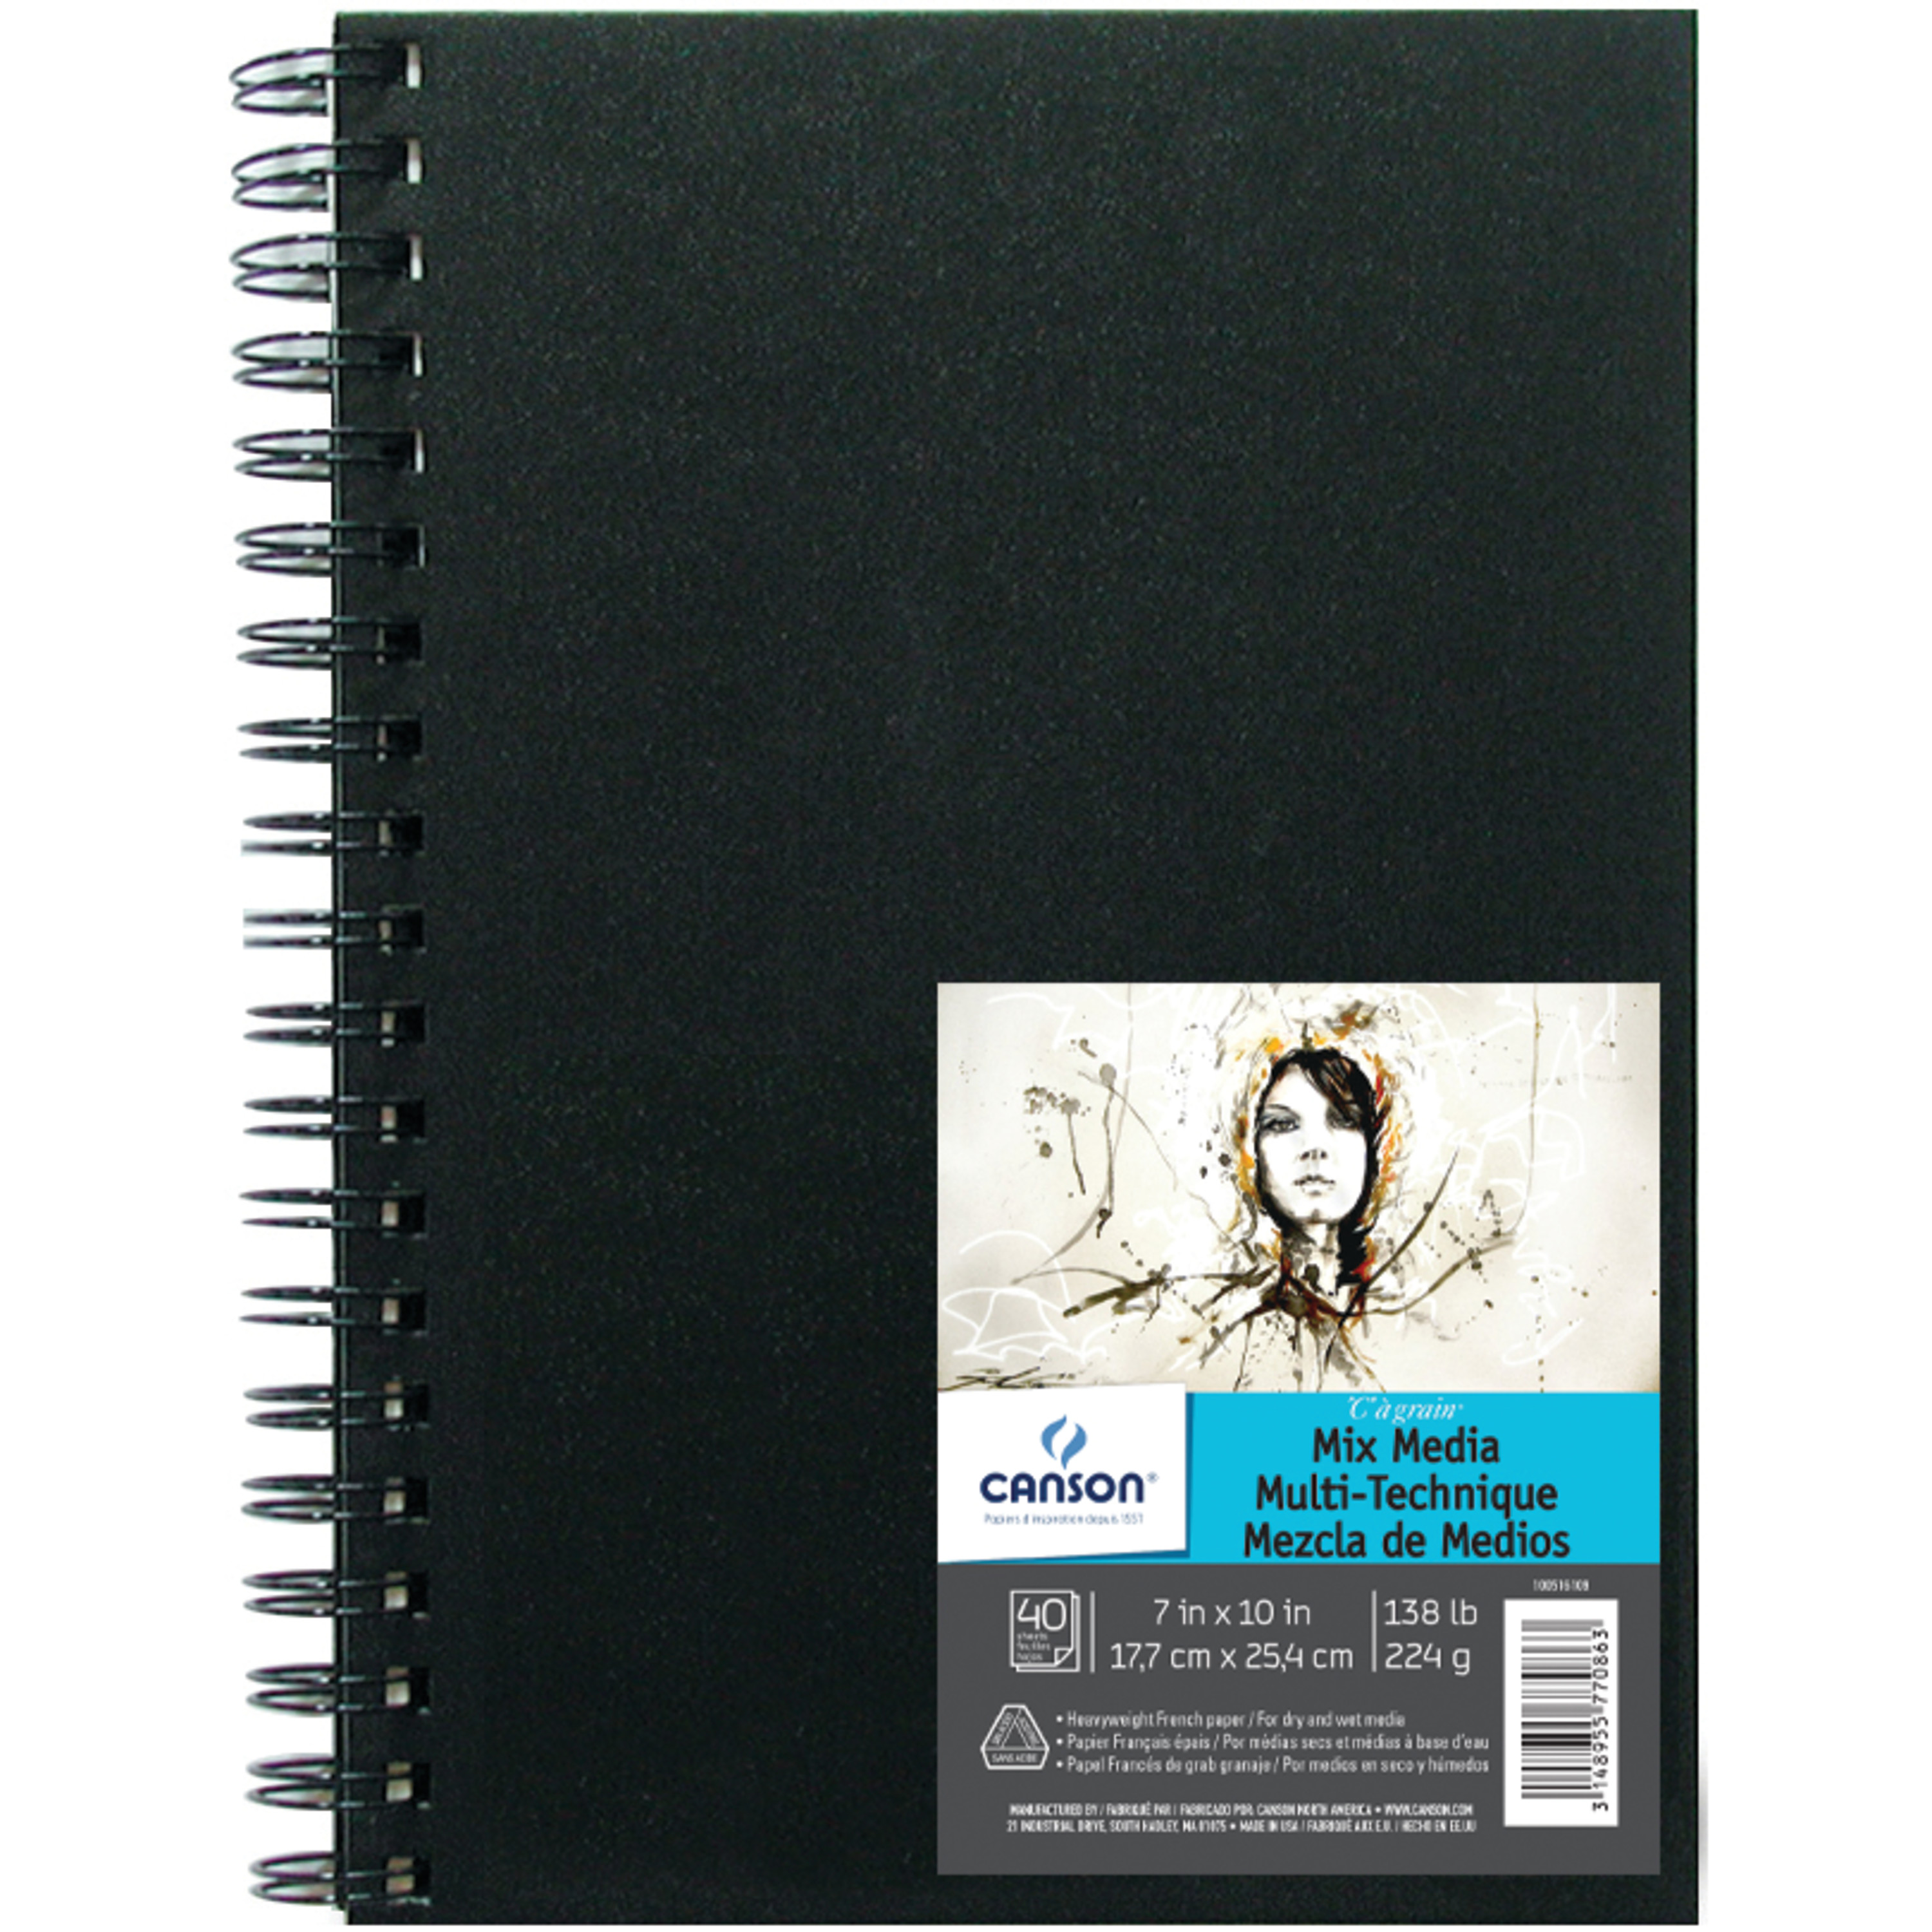 Canson Mixed Media Art Book, 7in x 10in, 40/Sheets